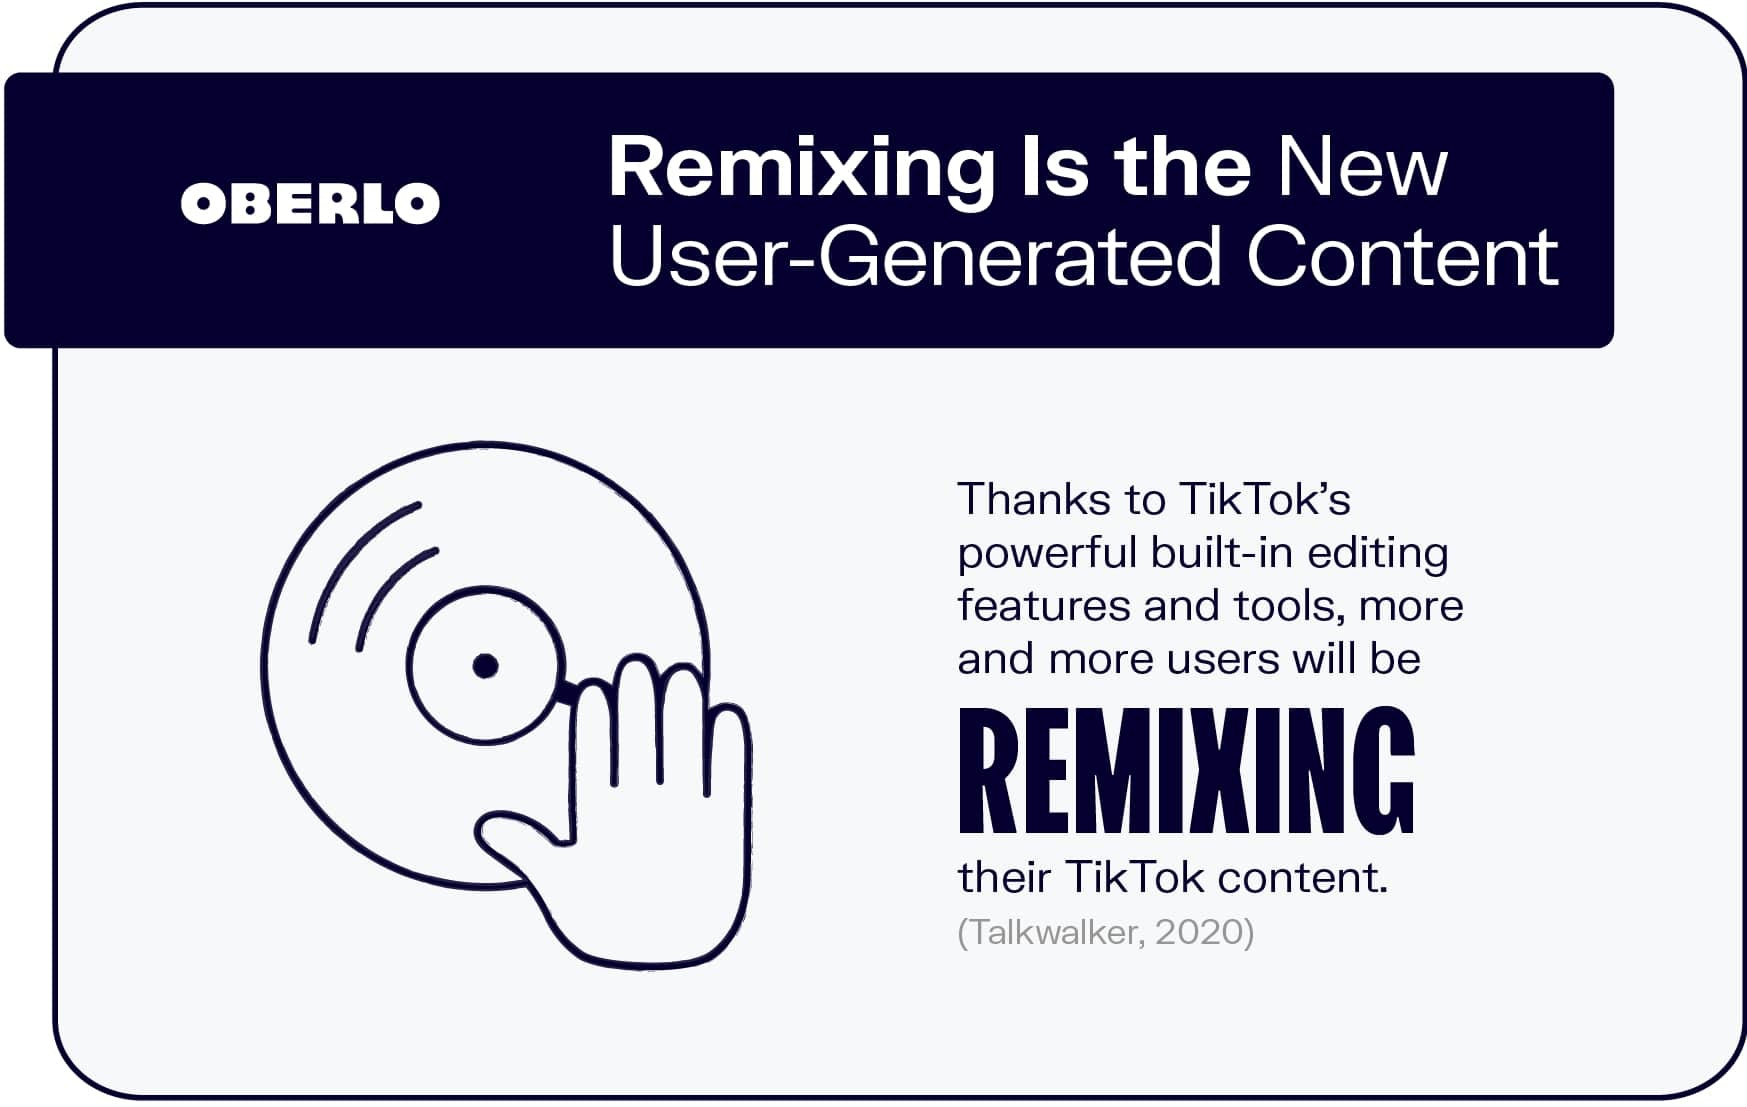 Remixing Is the New User-Generated Content